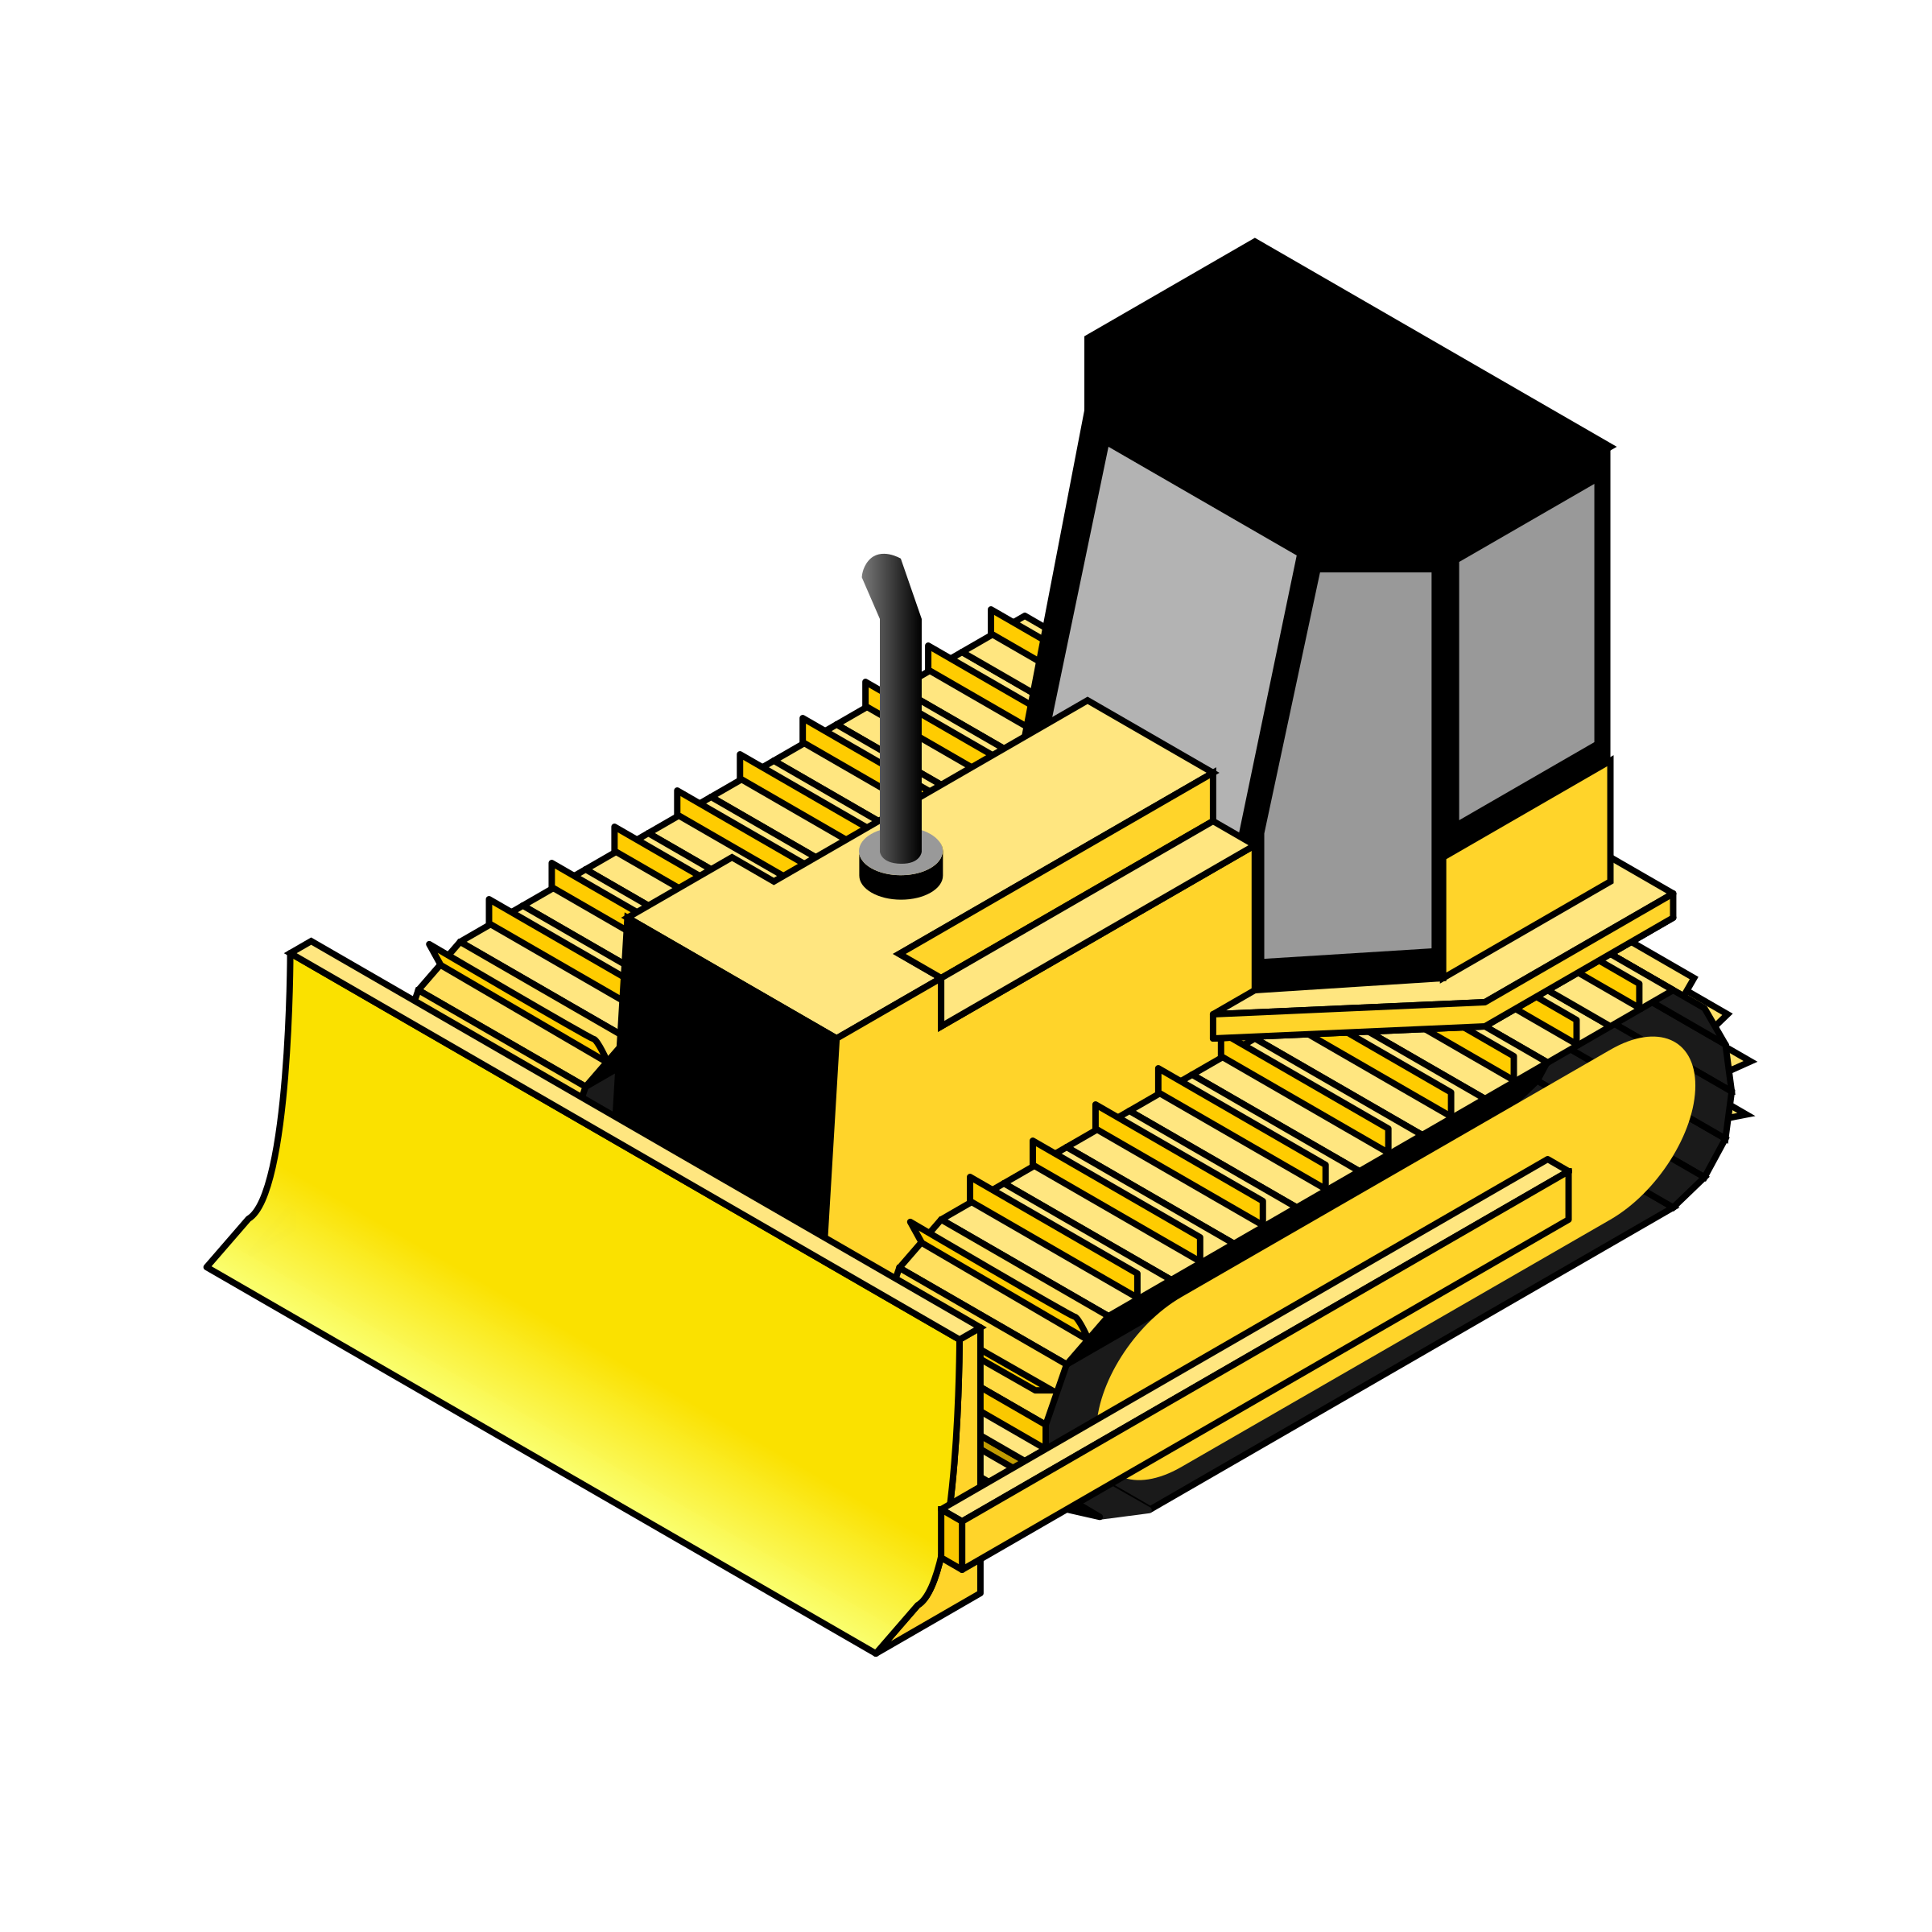 Bulldozer svg simple. Isometric icons png free